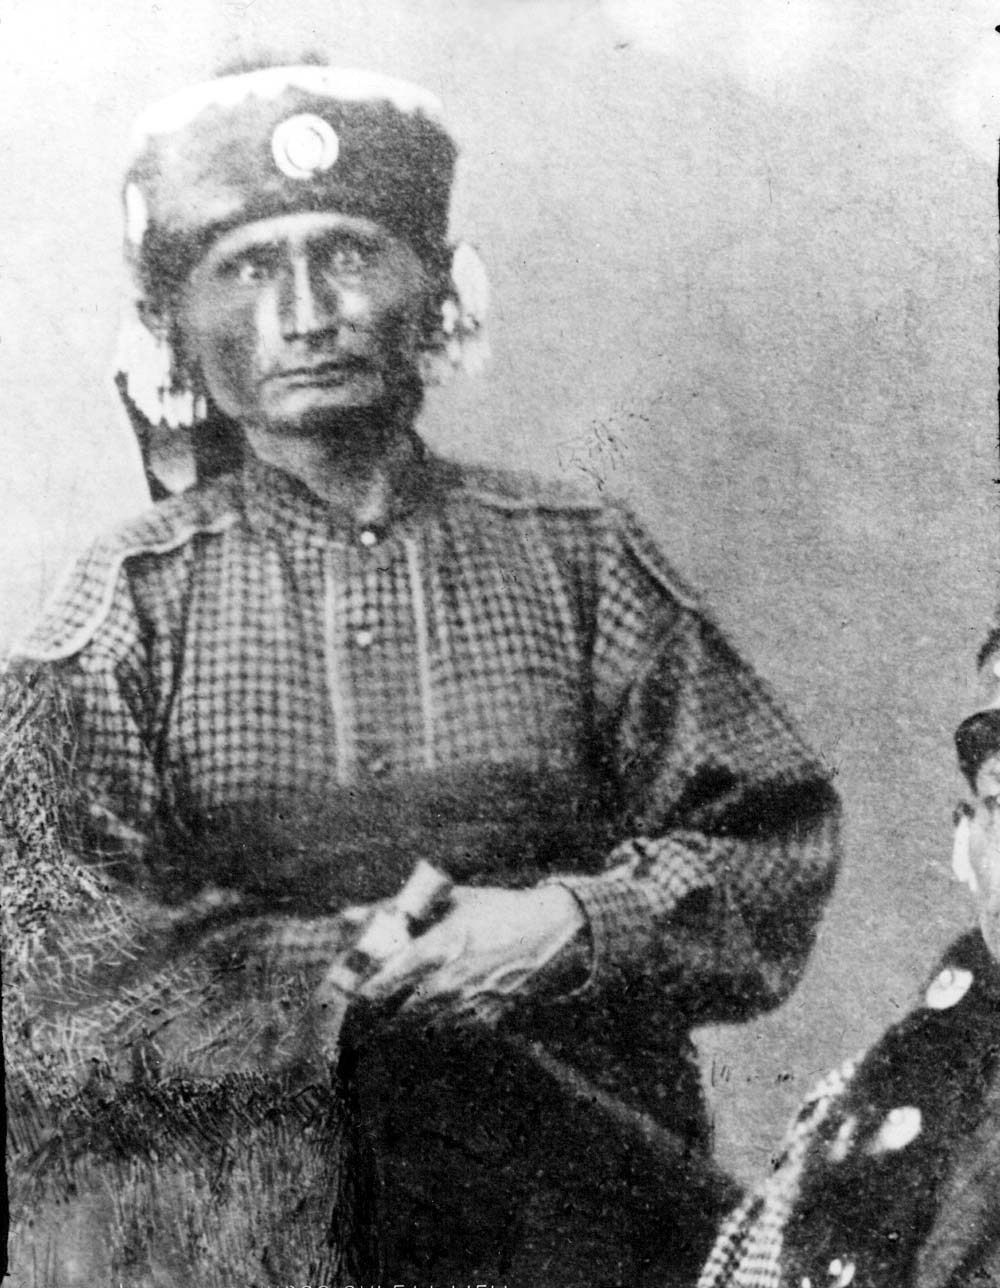 Al-le-ga-wa-ho, Head Chief of the Kaw